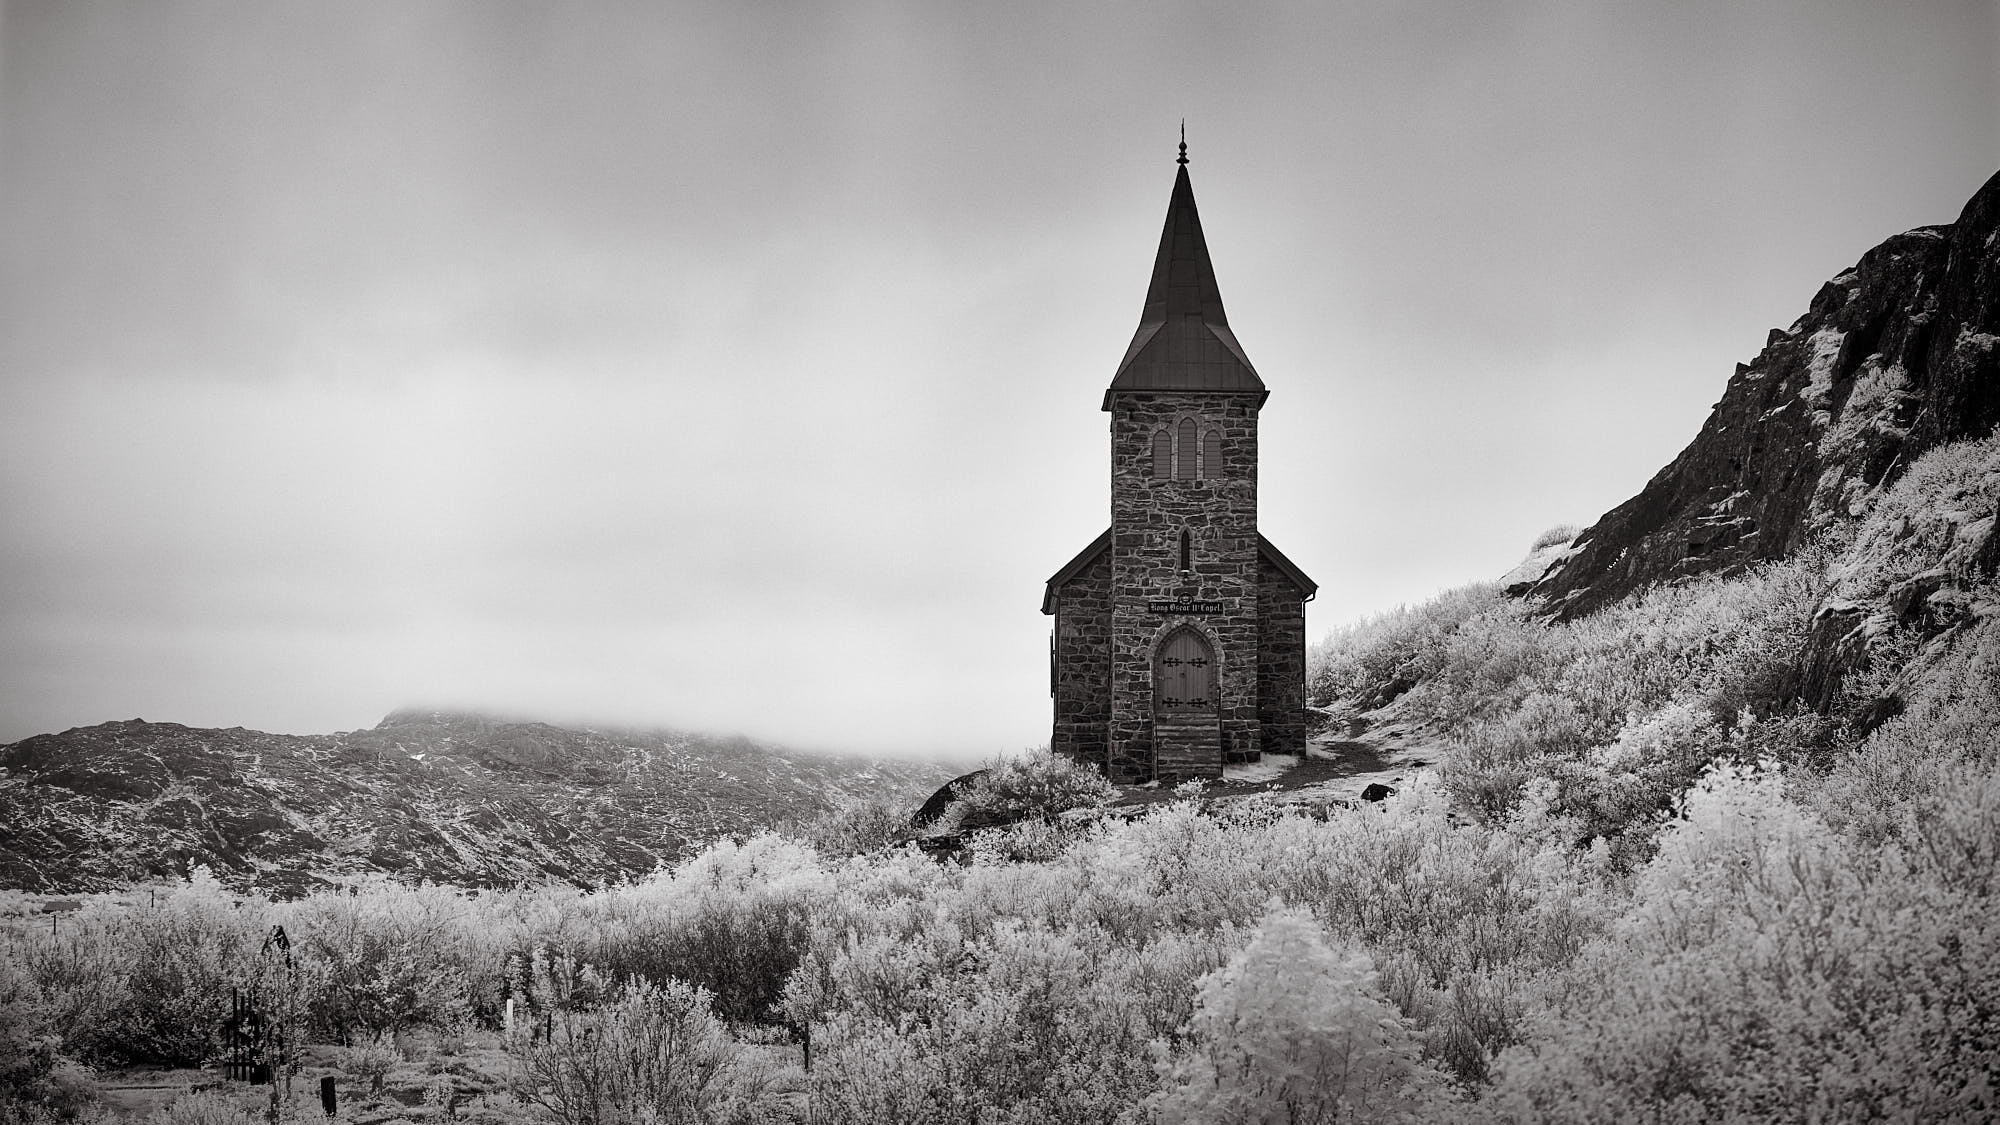 A panorama in infrared / Fujifilm X-T1 ISO 400 1/180a f/2.8 80mm (four images stitched together)